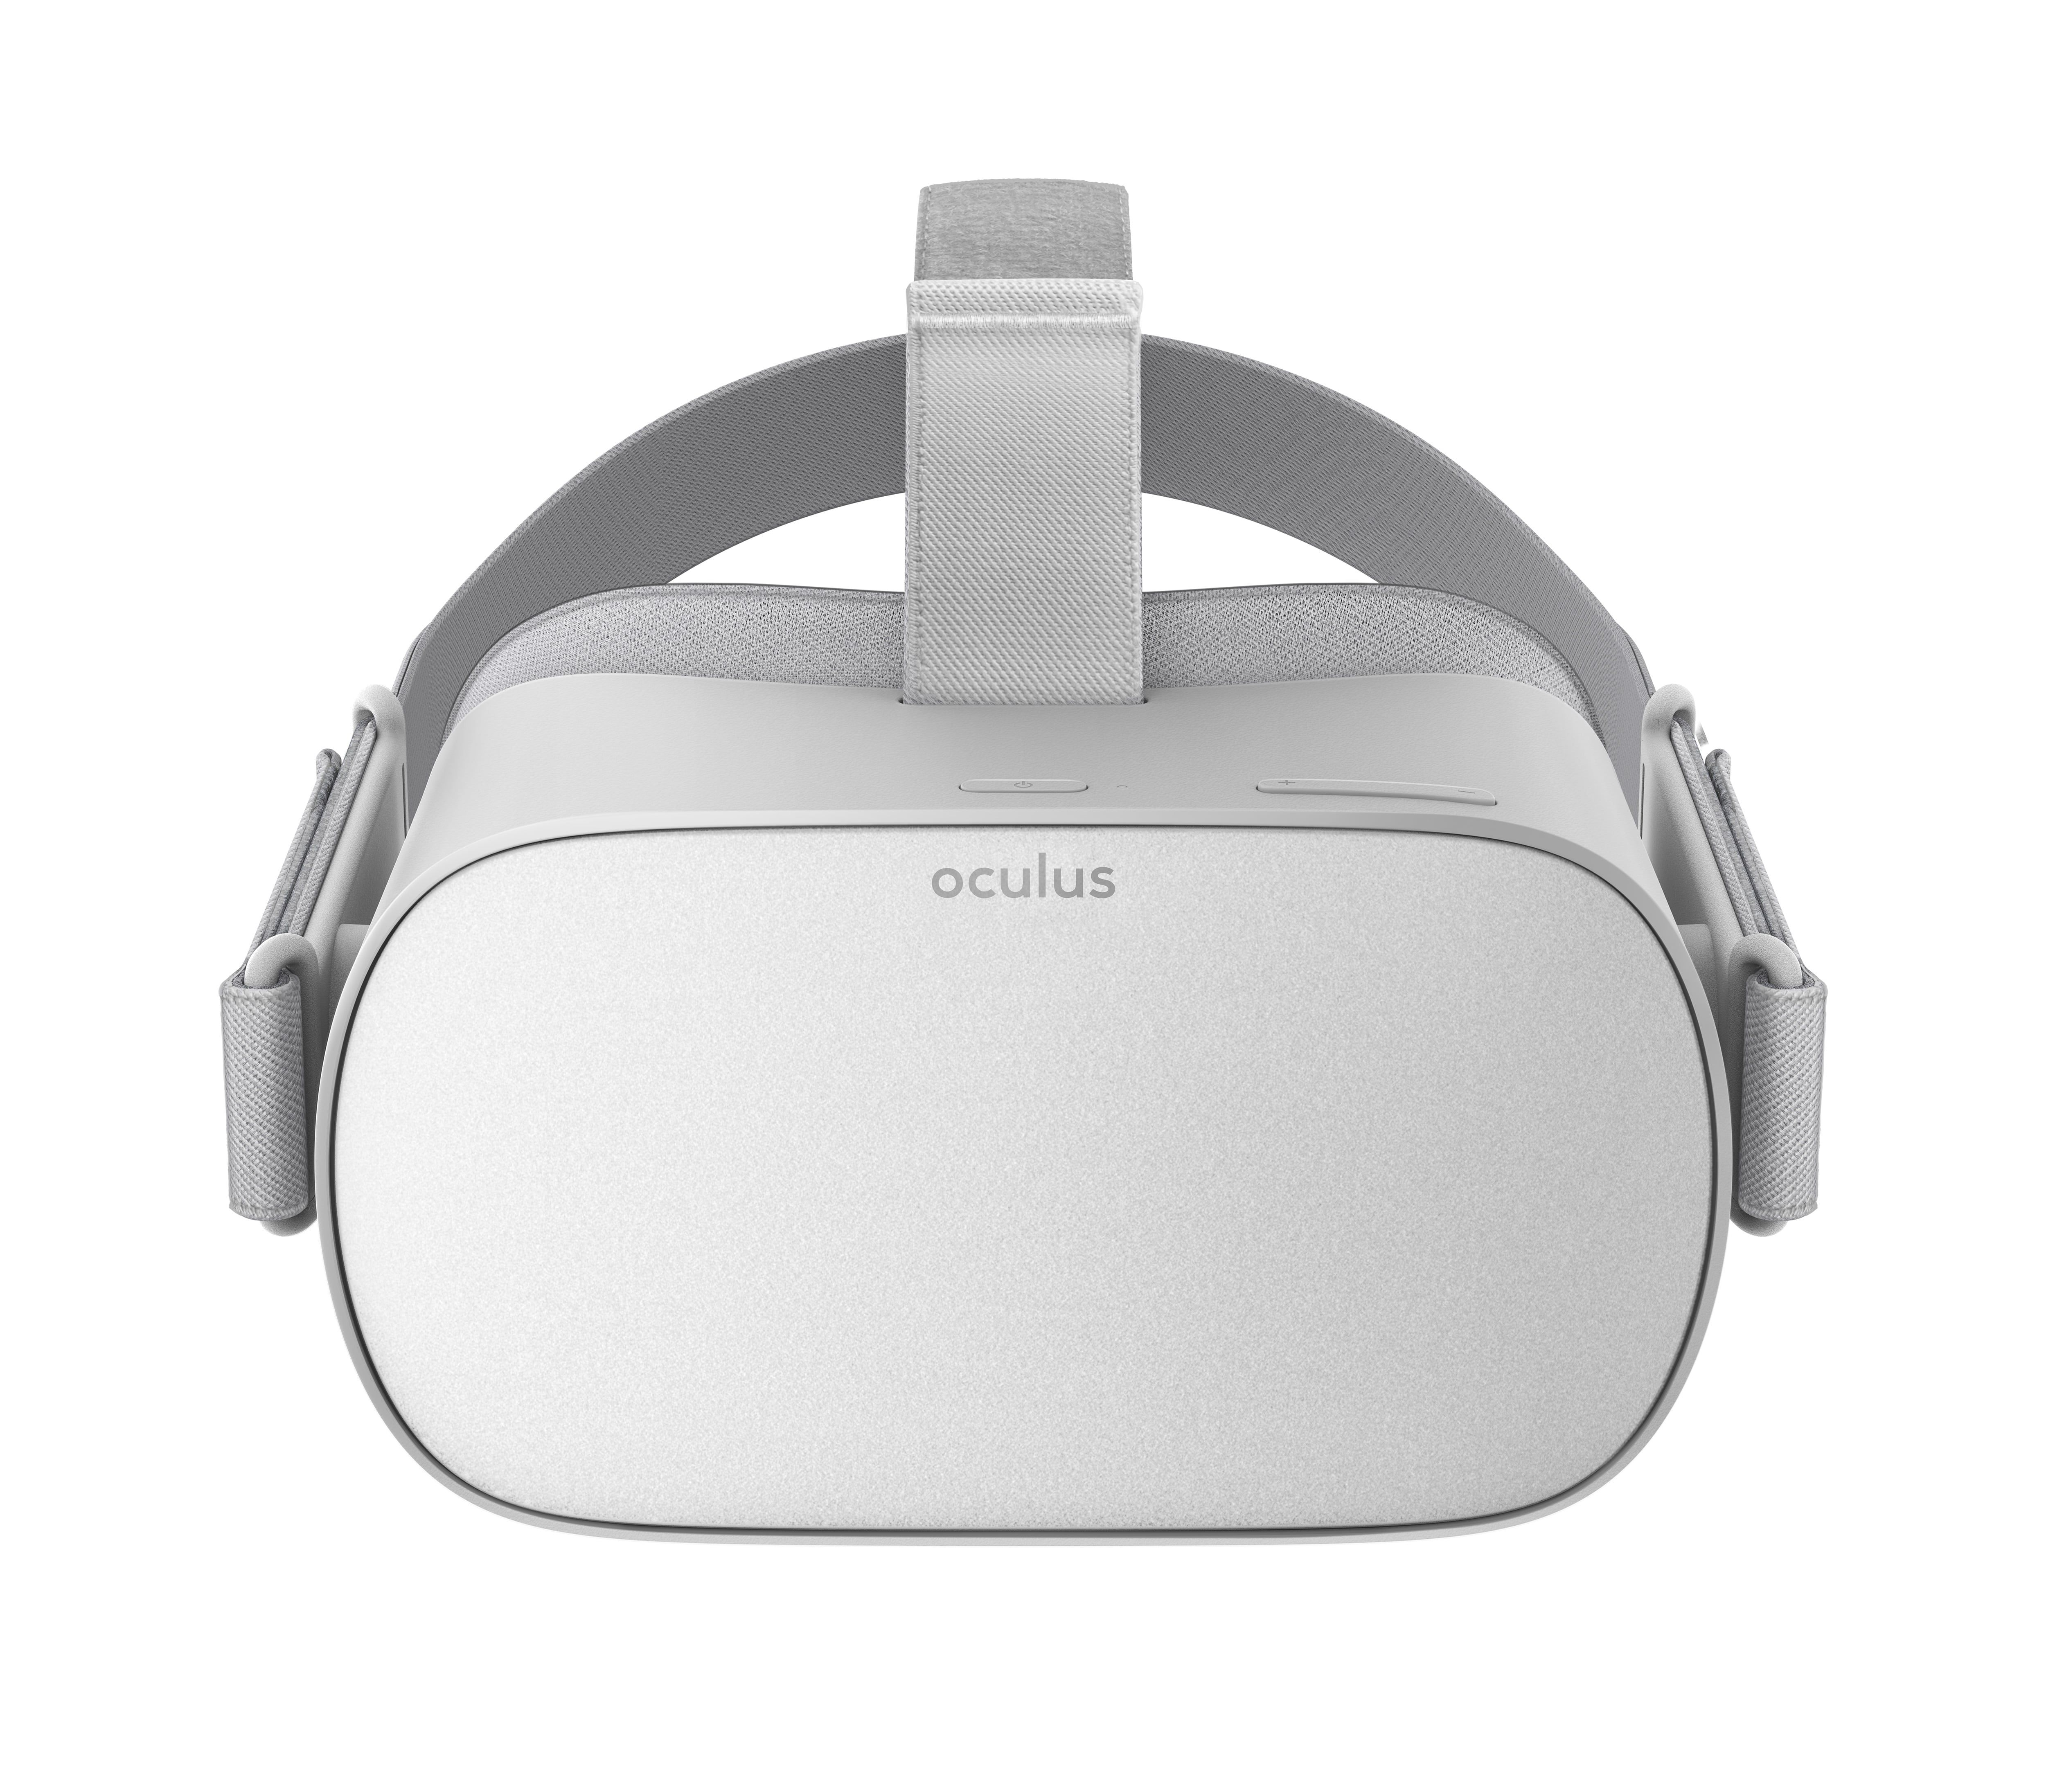 Win an Oculus GO VR Headset! all about the cash